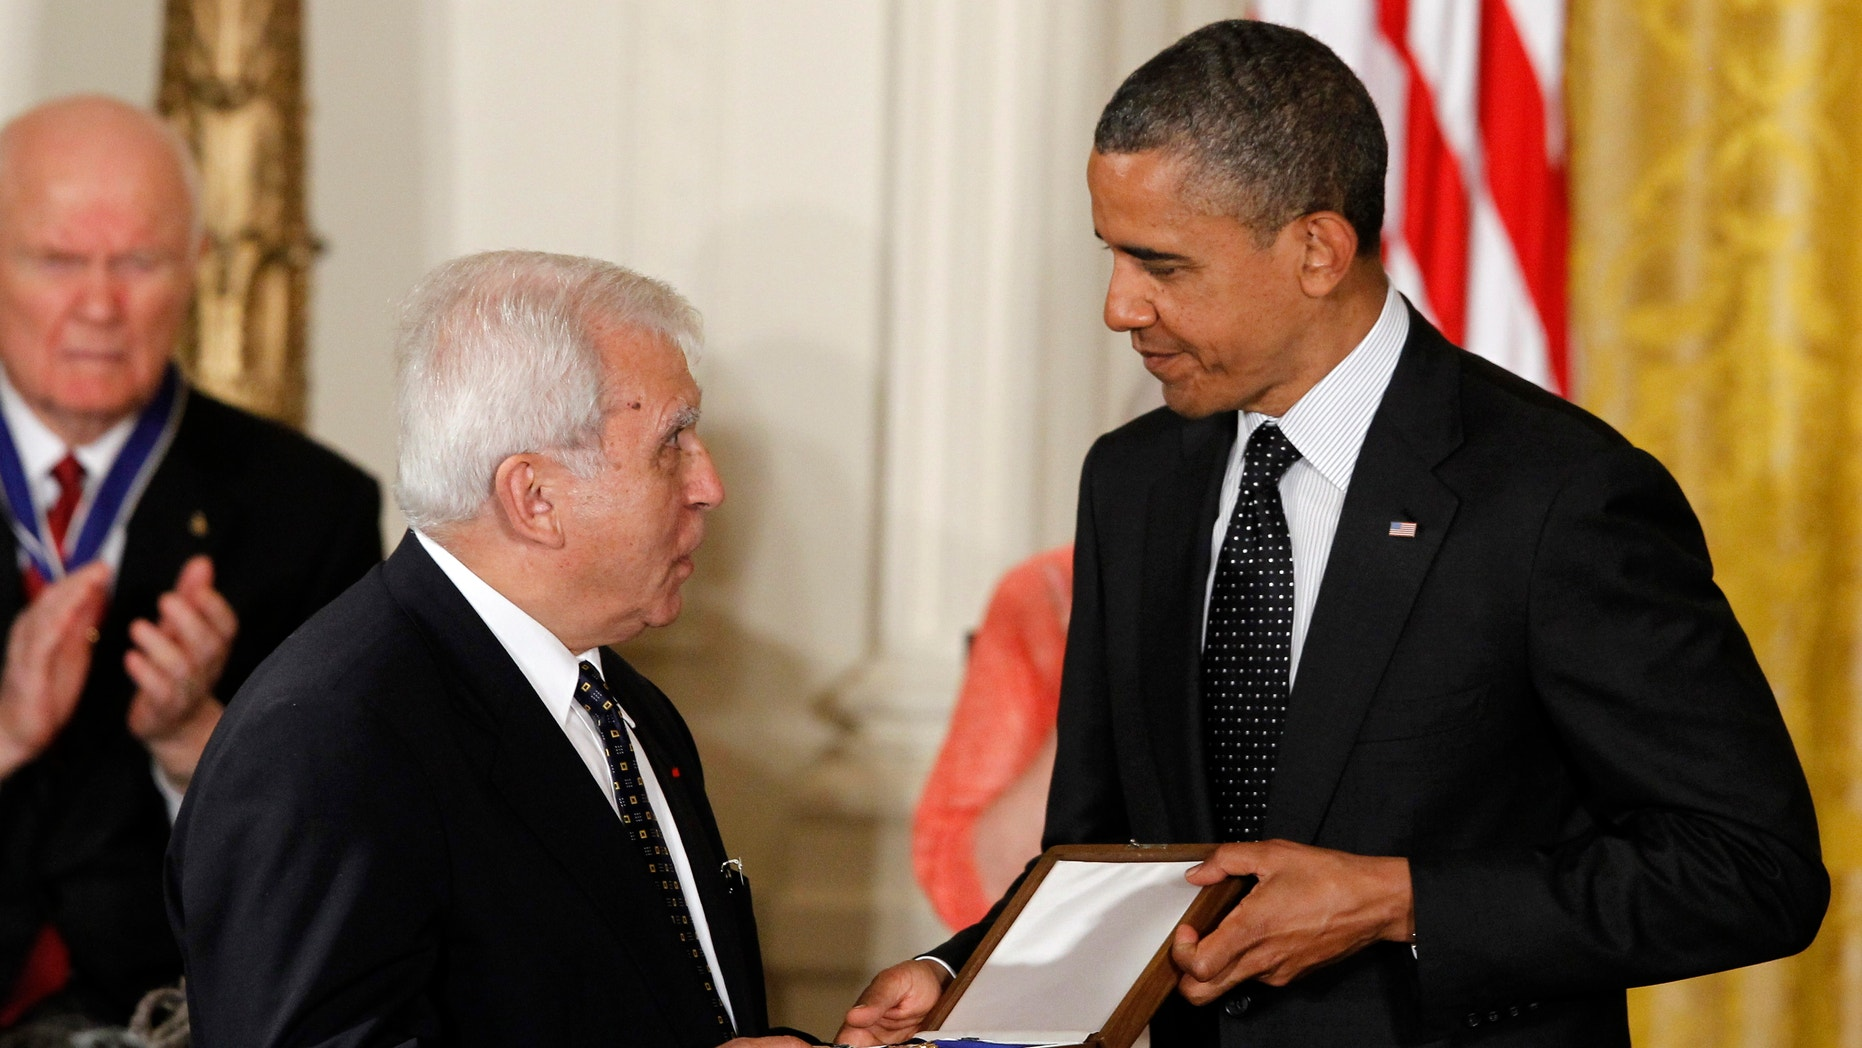 May 29, 2012: President Barack Obama awards the Medal of Freedom to former Polish Foreign Minister Adam Daniel Rotfeld who is accepting for Jan Karski, a resistance fighter against the Nazi occupation of Poland during World War II, during a ceremony in the East Room of the White House in Washington.